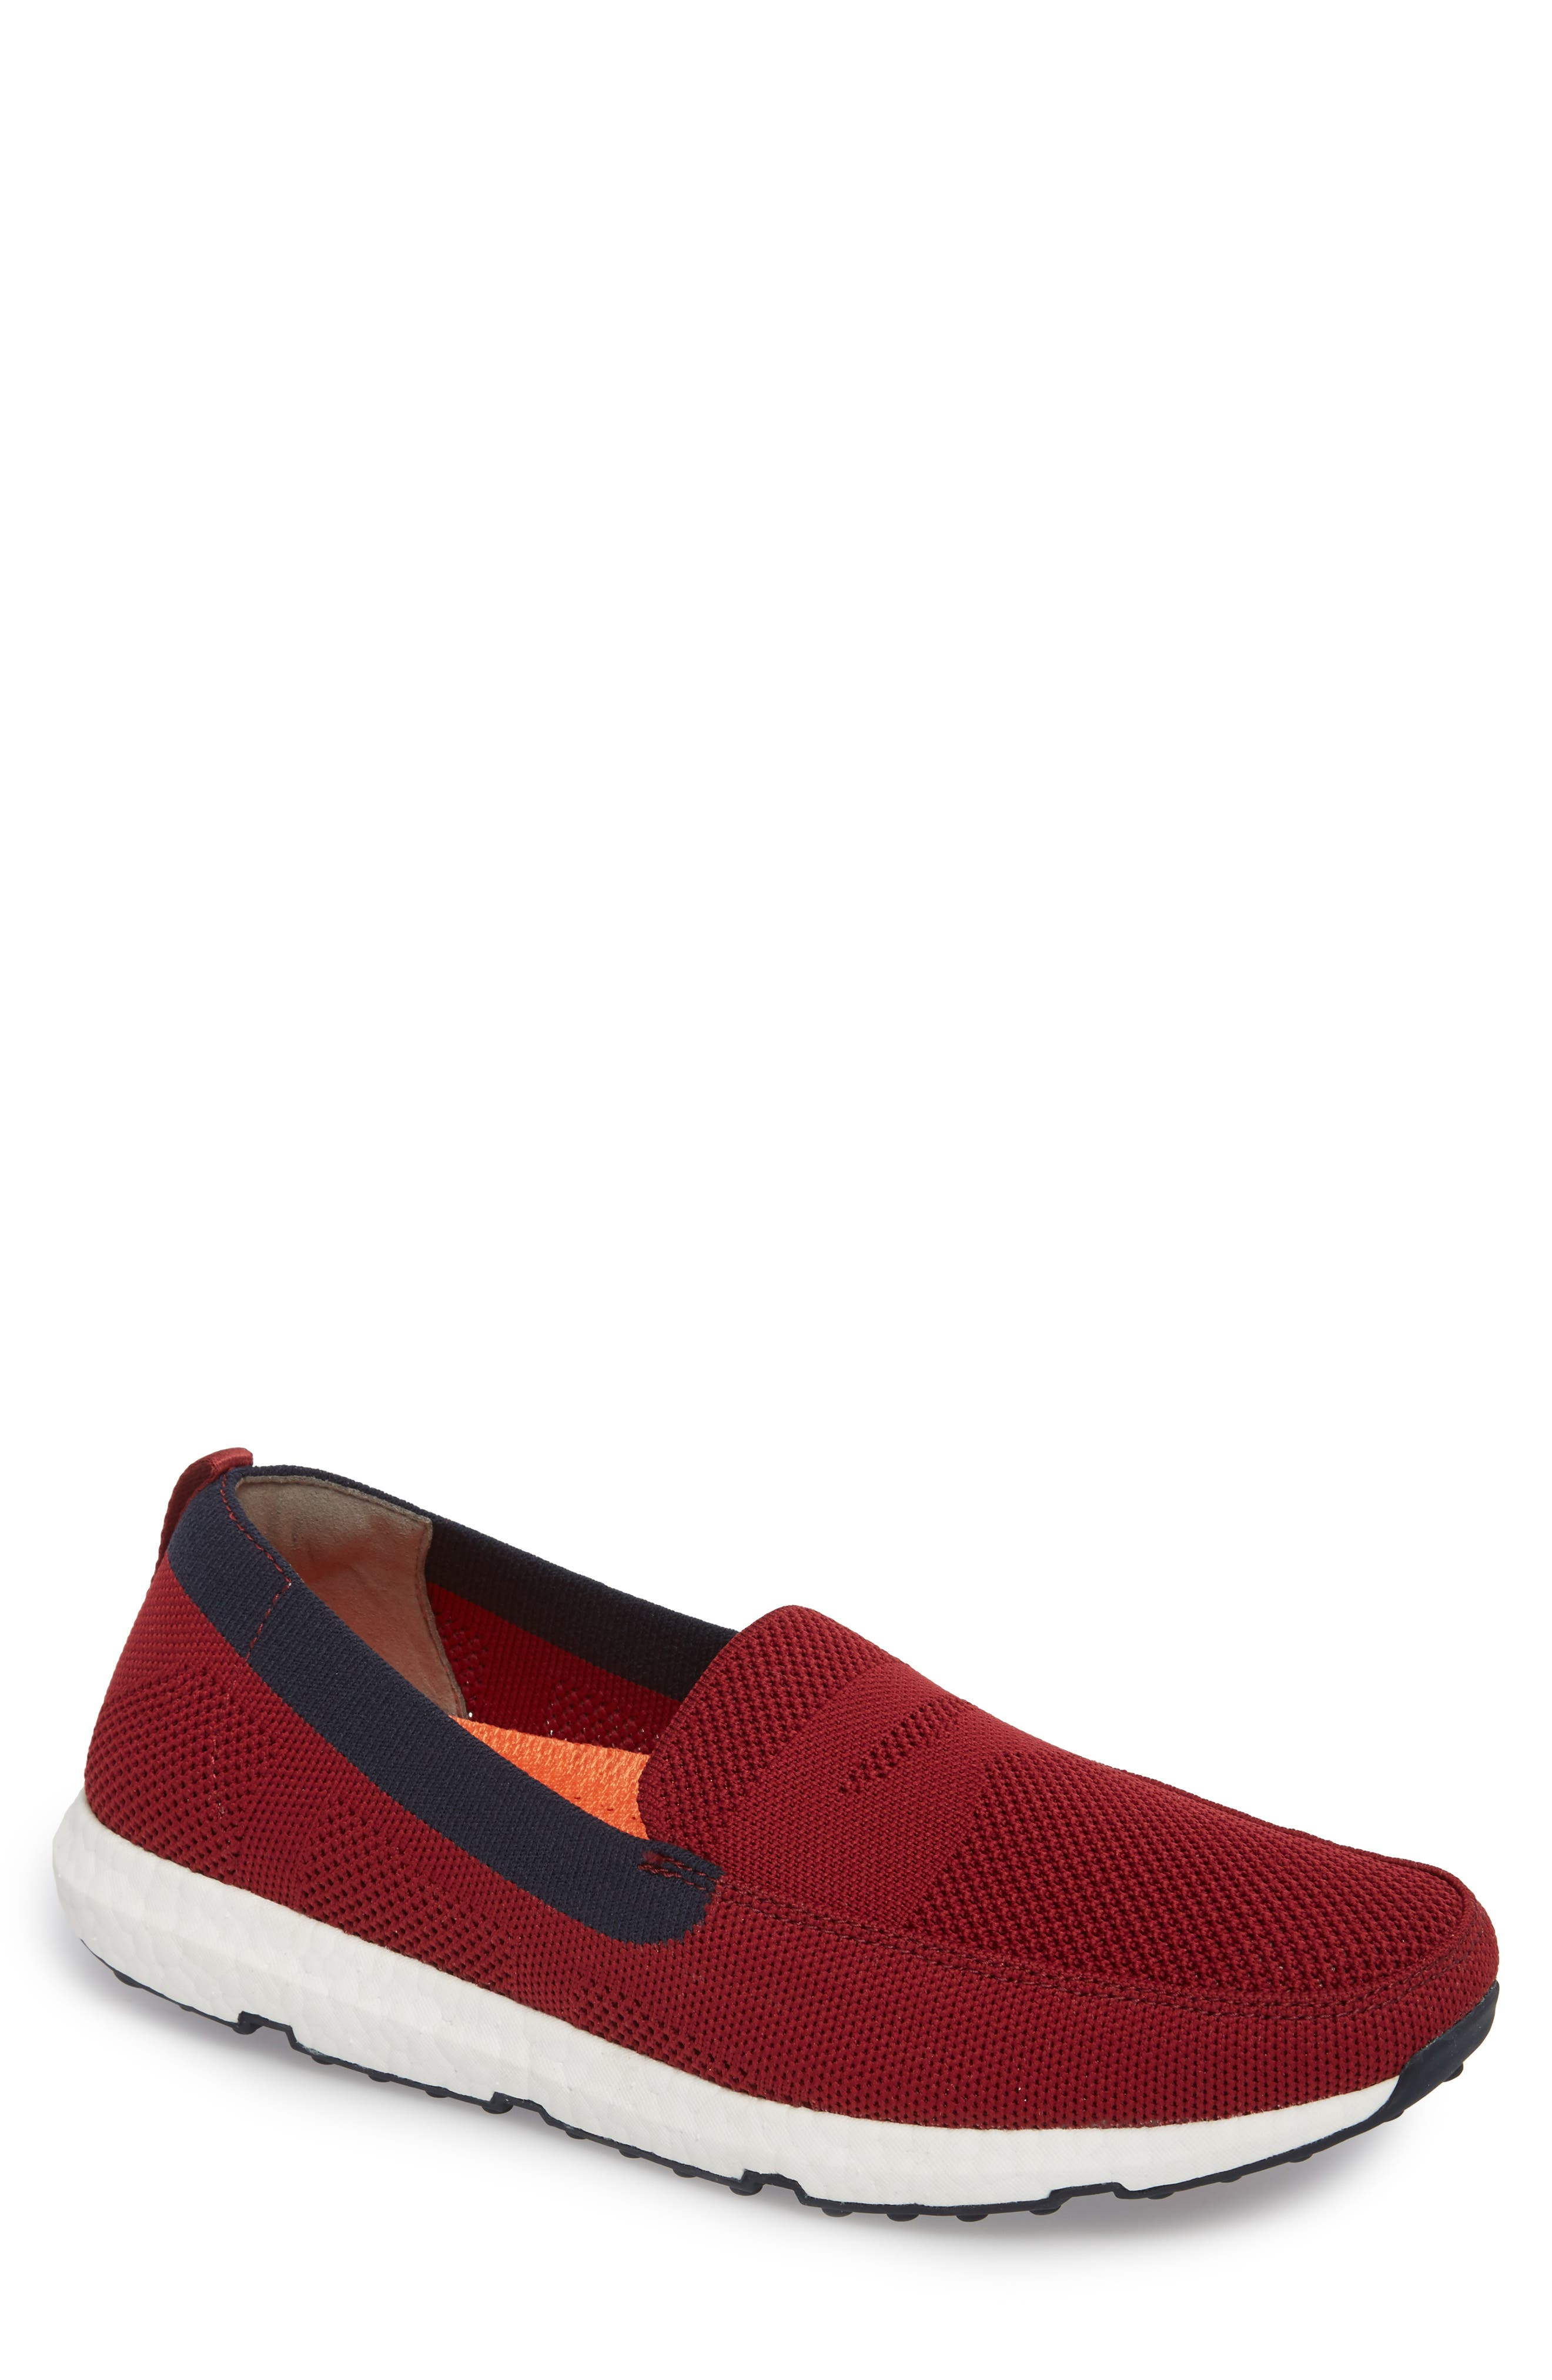 Breeze Leap Penny Loafer,                             Main thumbnail 1, color,                             Deep Red/ Navy